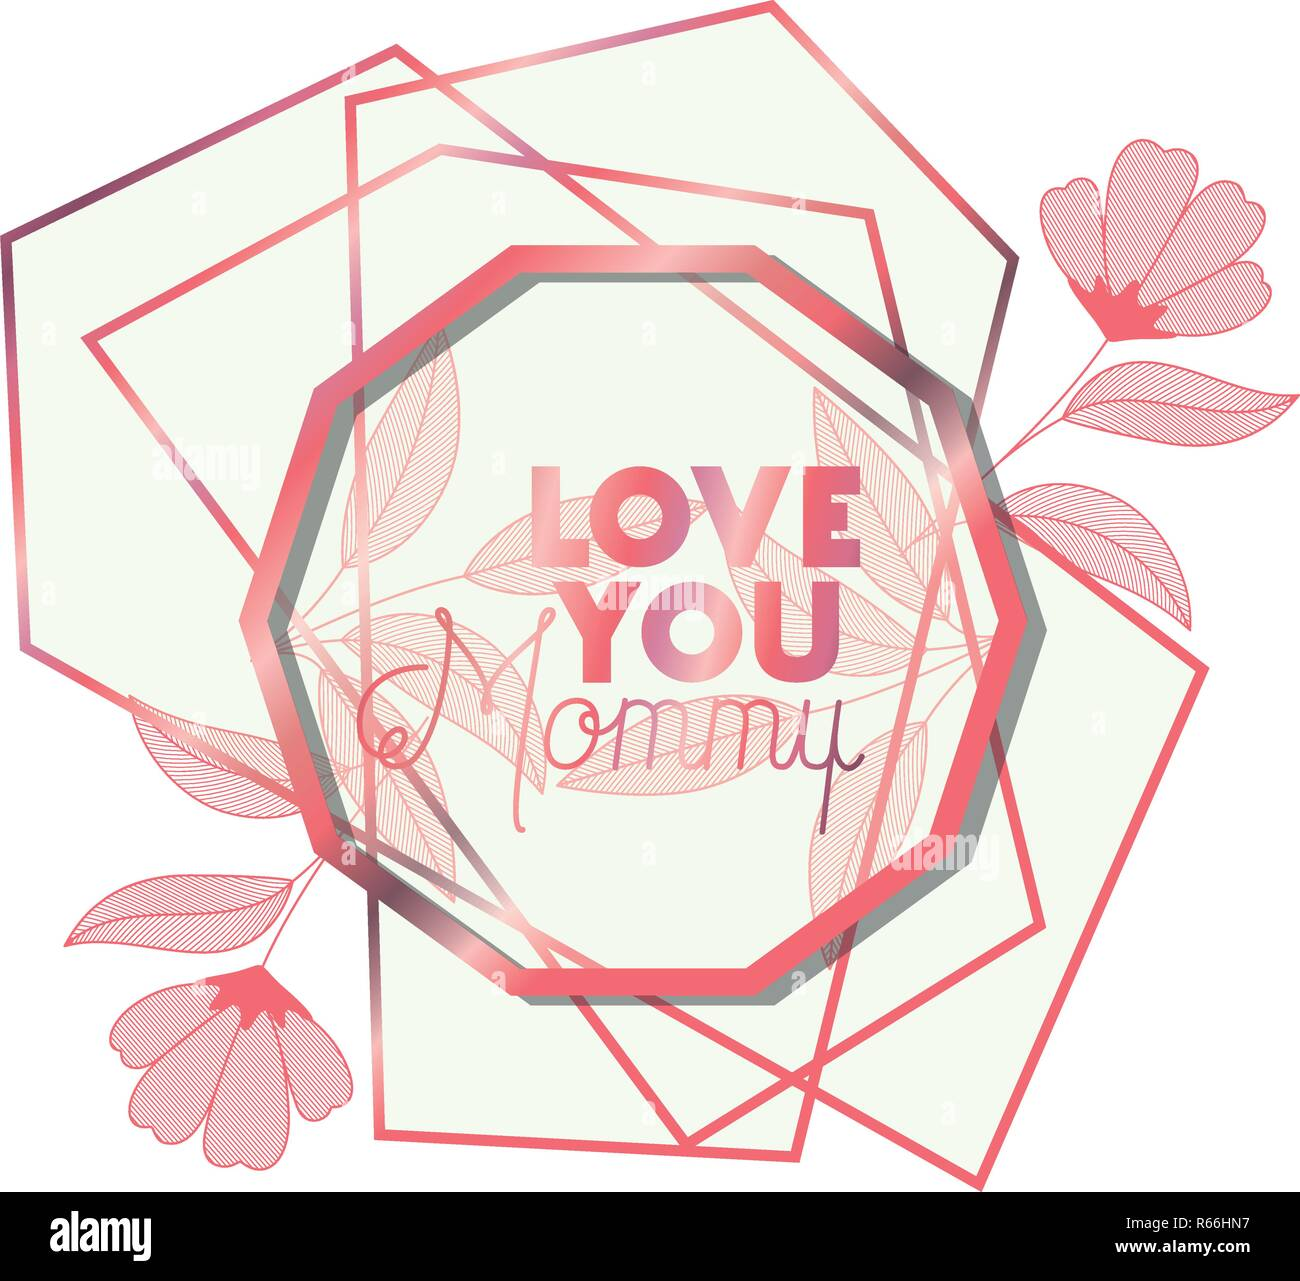 love you mommy with pink frame hexagon - Stock Image